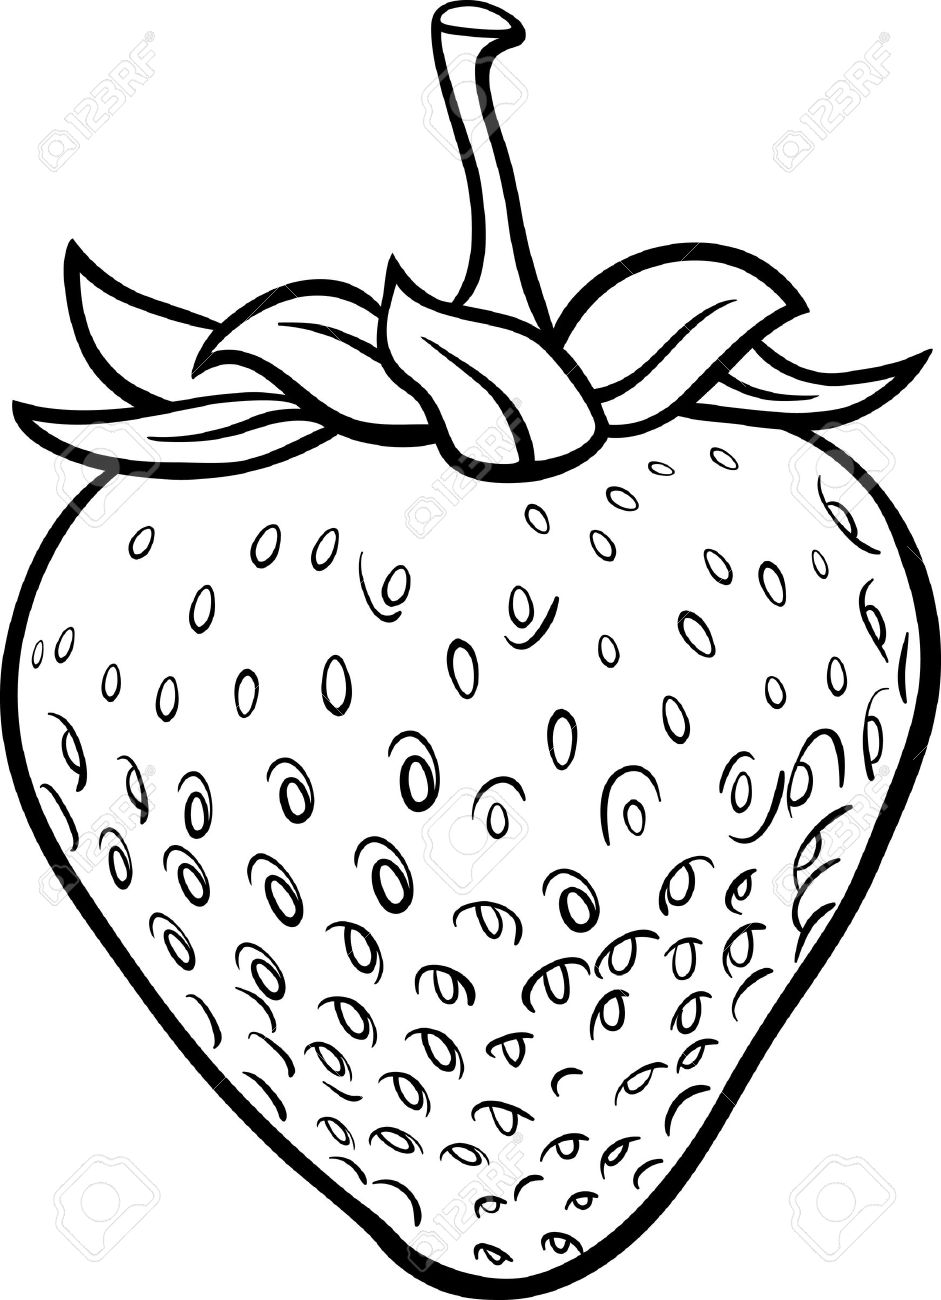 Strawberry clipart black and white » Clipart Station.